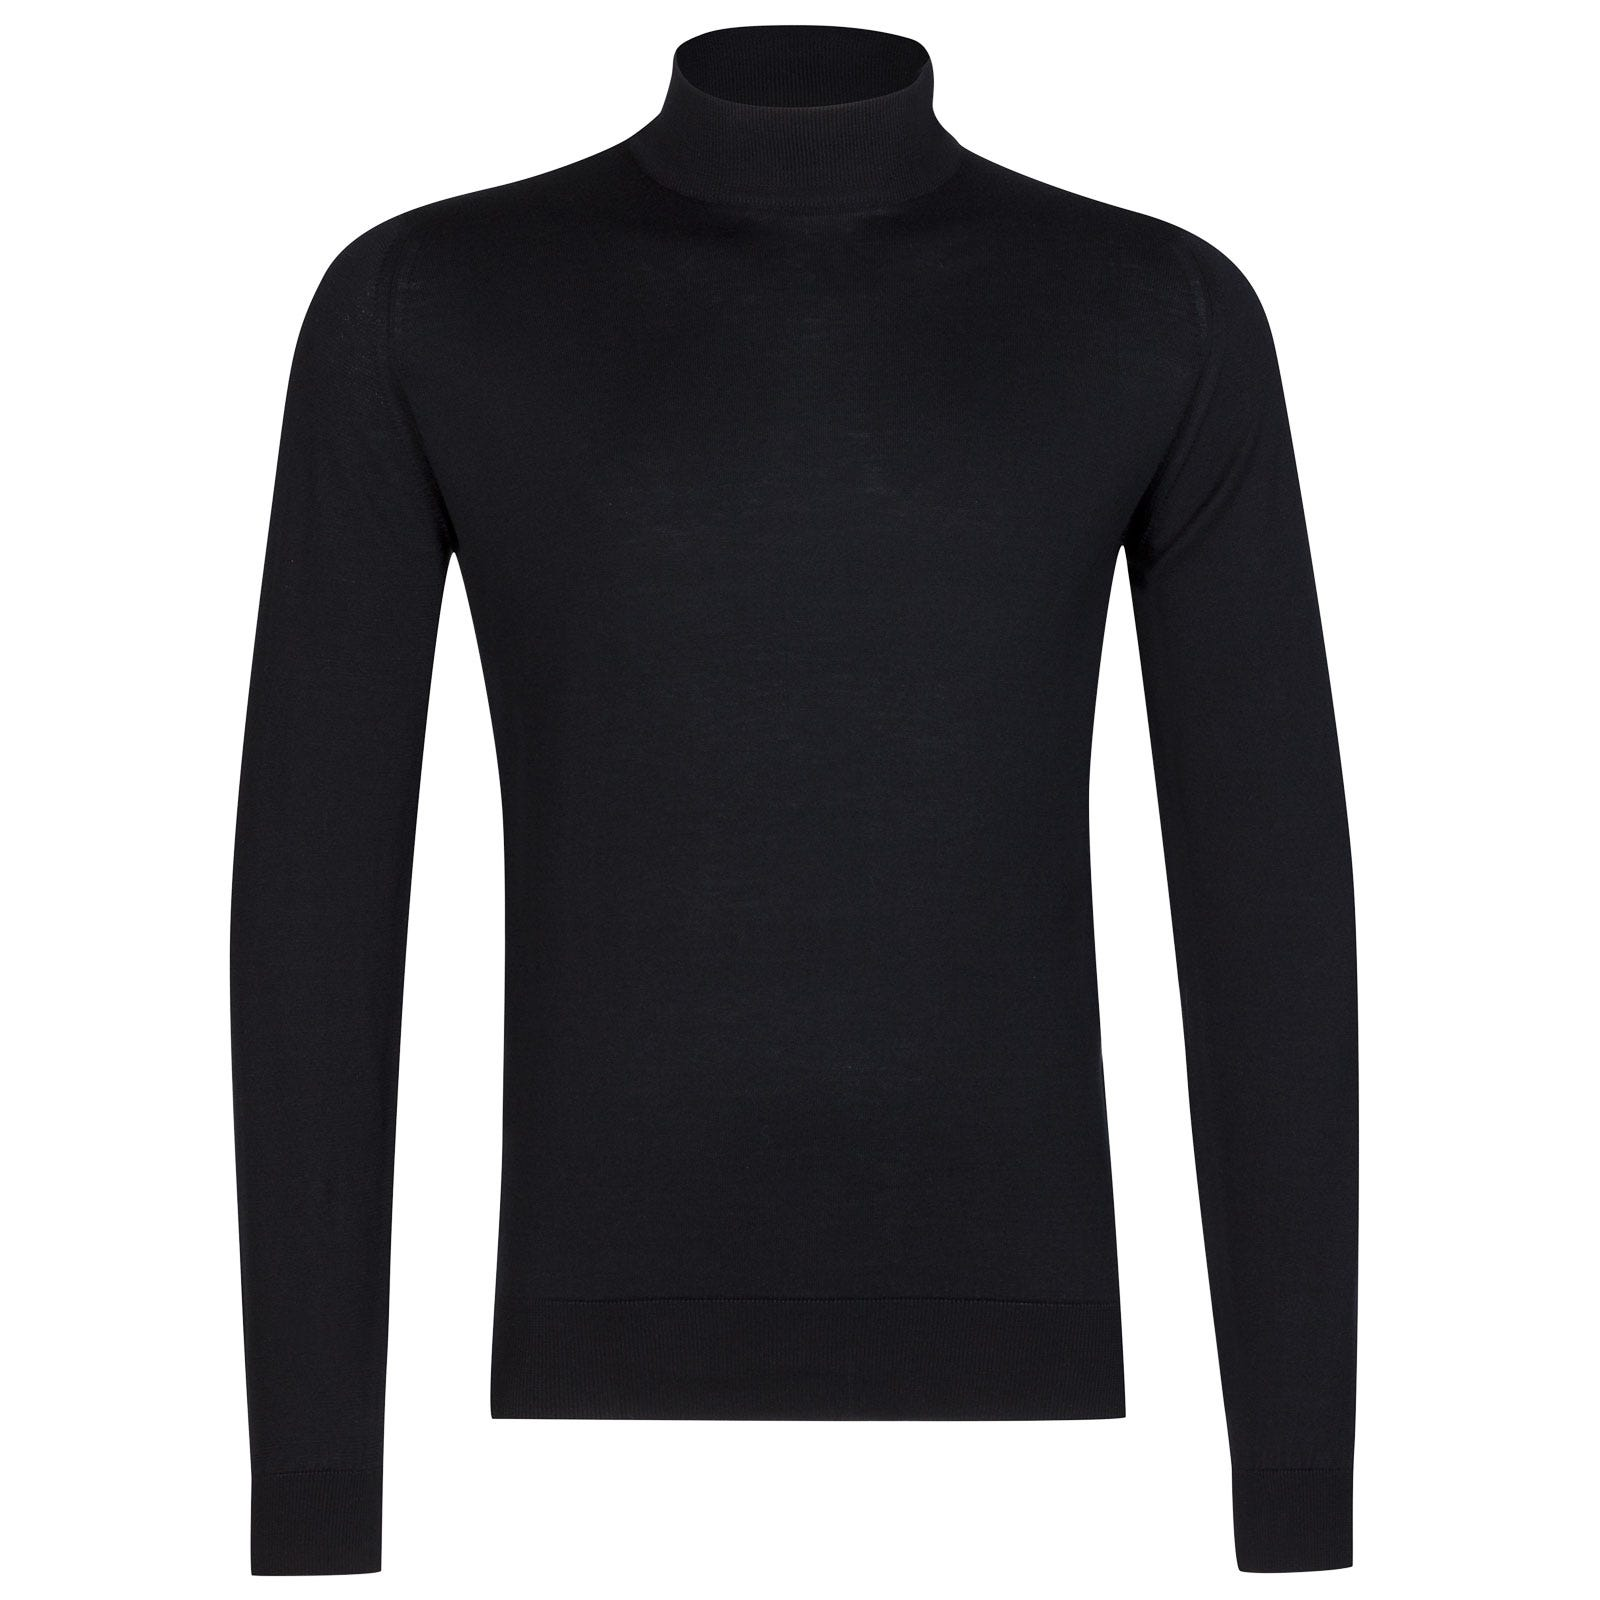 John Smedley Bradgate Sea Island Cotton Pullover in Black-XXL